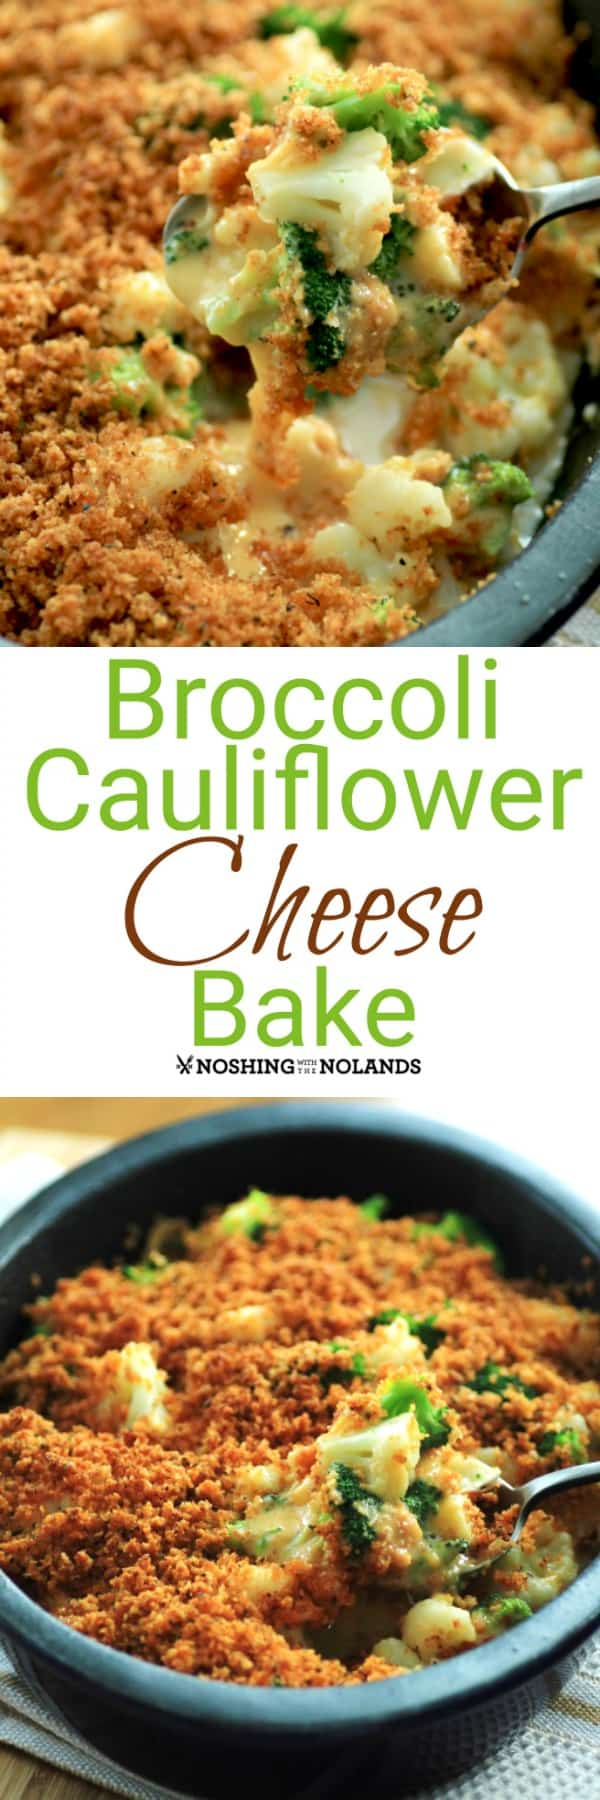 Broccoli Cauliflower Cheese Bake casserole is a super easy dish for the holidays. Make a double batch for a big crowd! #broccoli #cauliflower #cheese #casserole